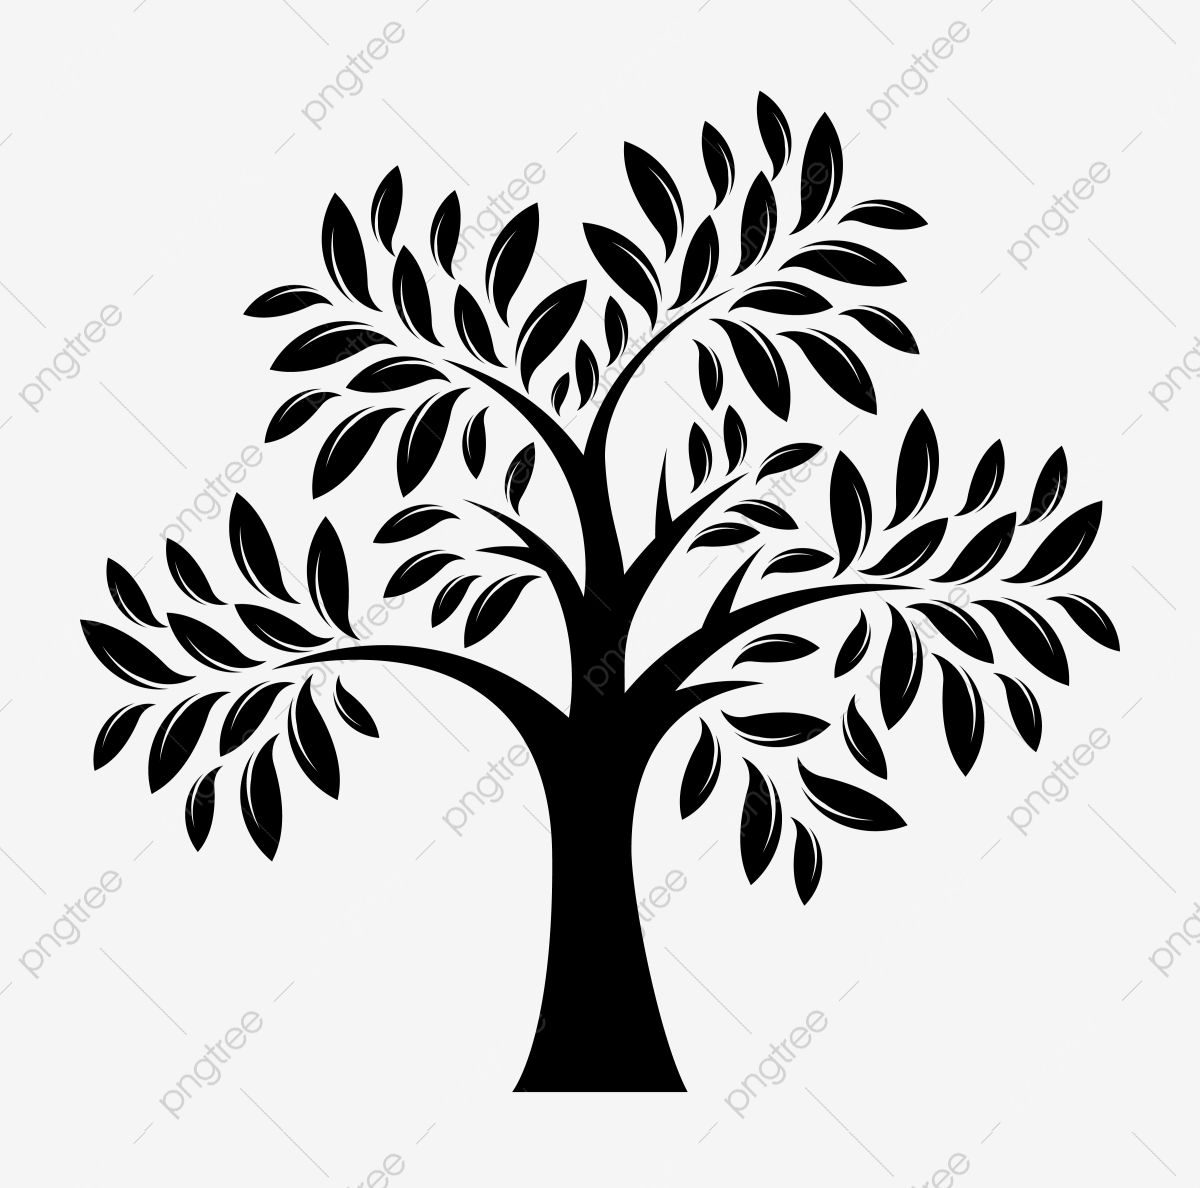 Download This Black Tree Silhouette Clipart In Vector Tree Clipart Tree Silhouette Tree Silhoutte Transparent Png Or Vec Tree Silhouette Black Tree Clip Art